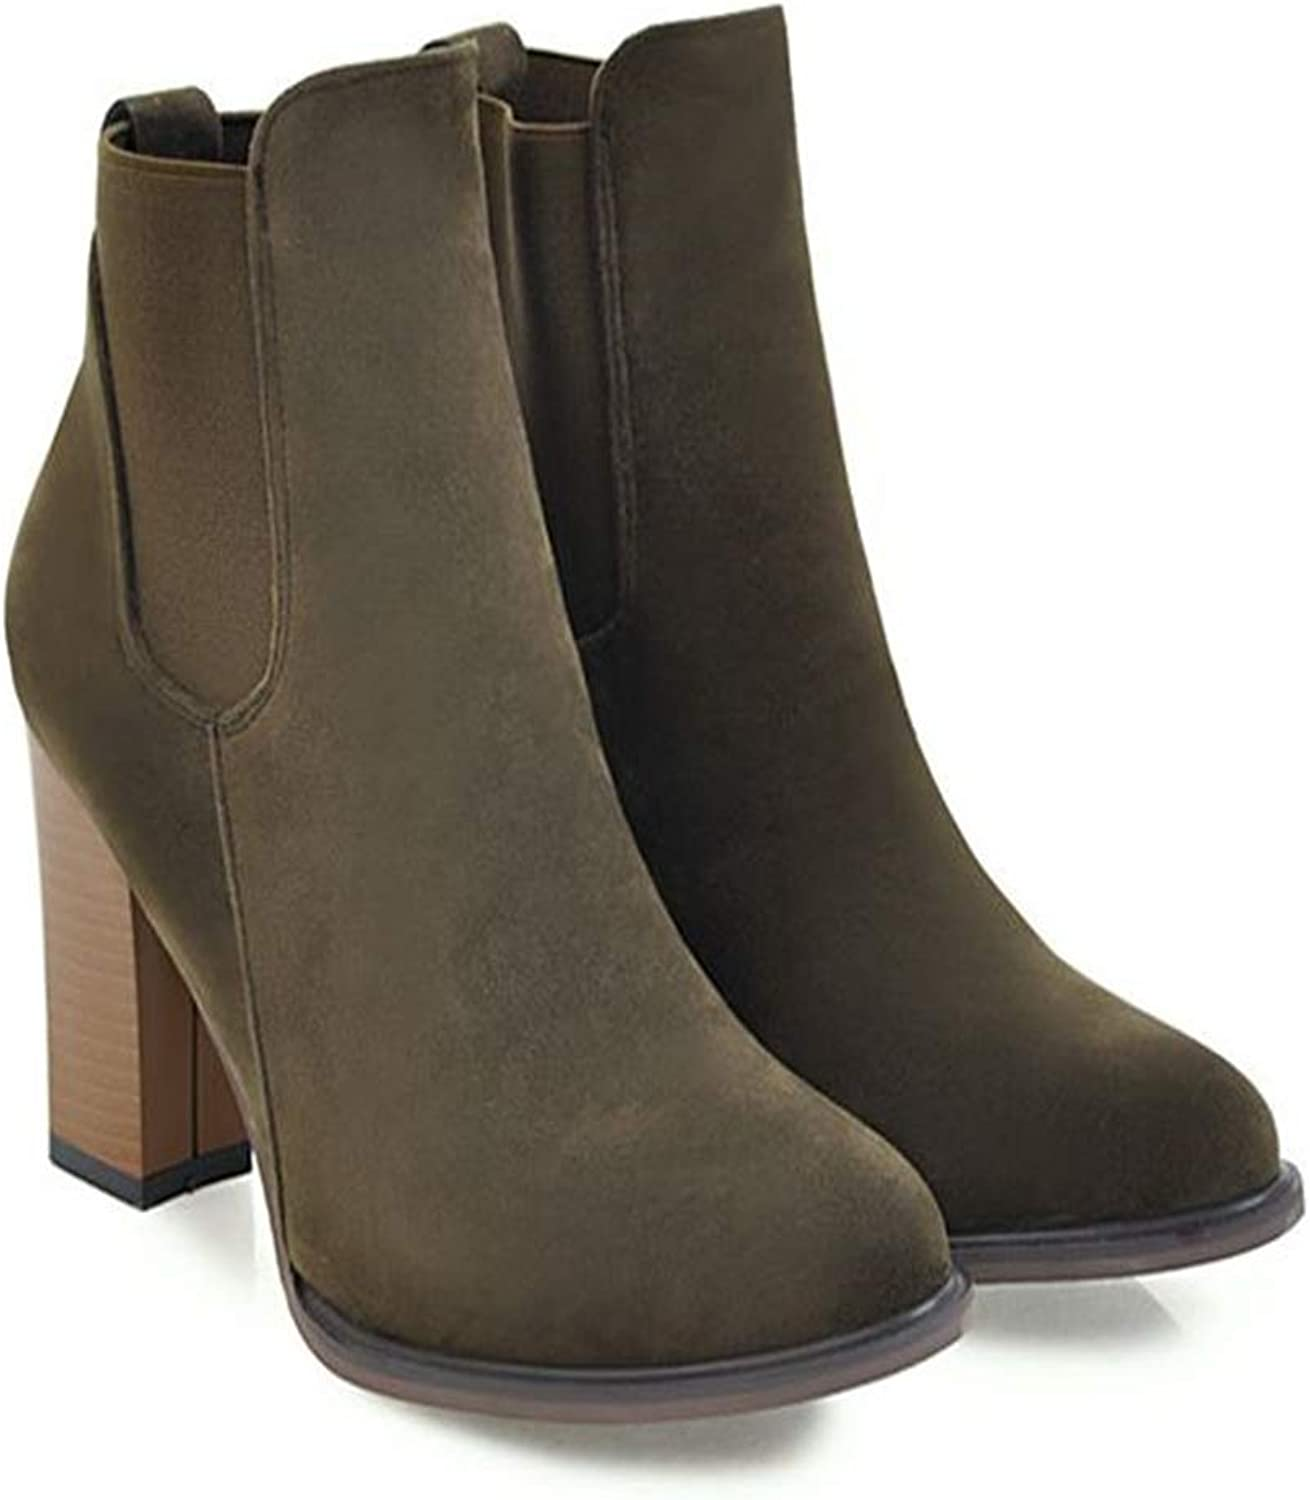 Quality.A Women's Thick Martin Boots high Heel Ankle Boots Retro Ankle Boots